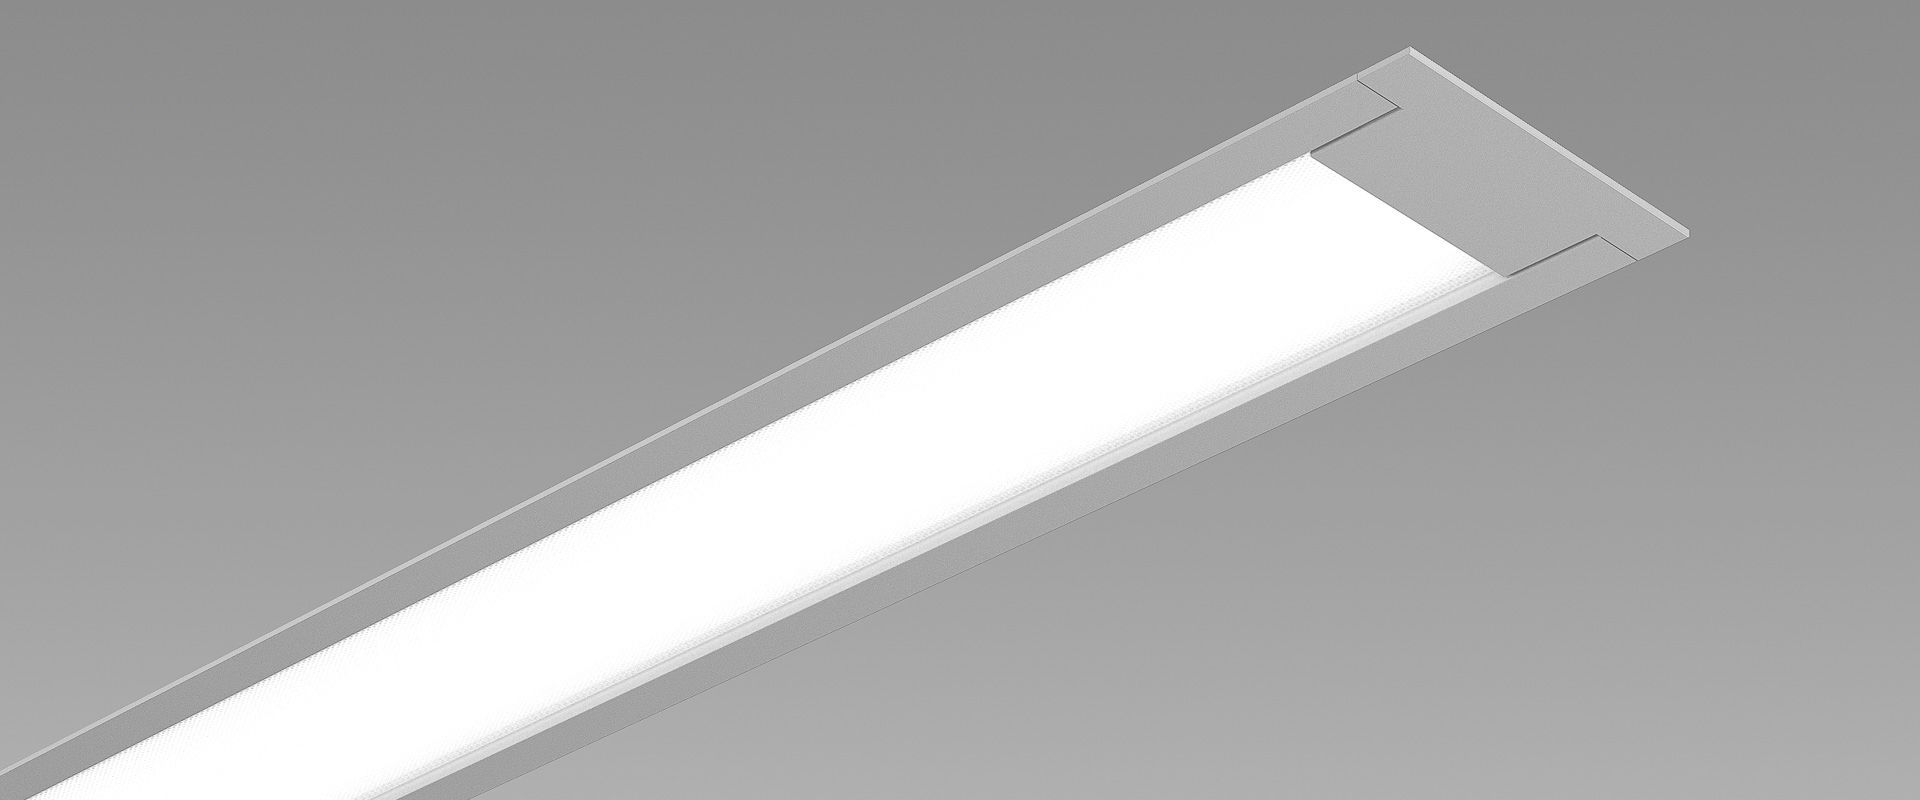 Surface Mounted Light Fixture Channel